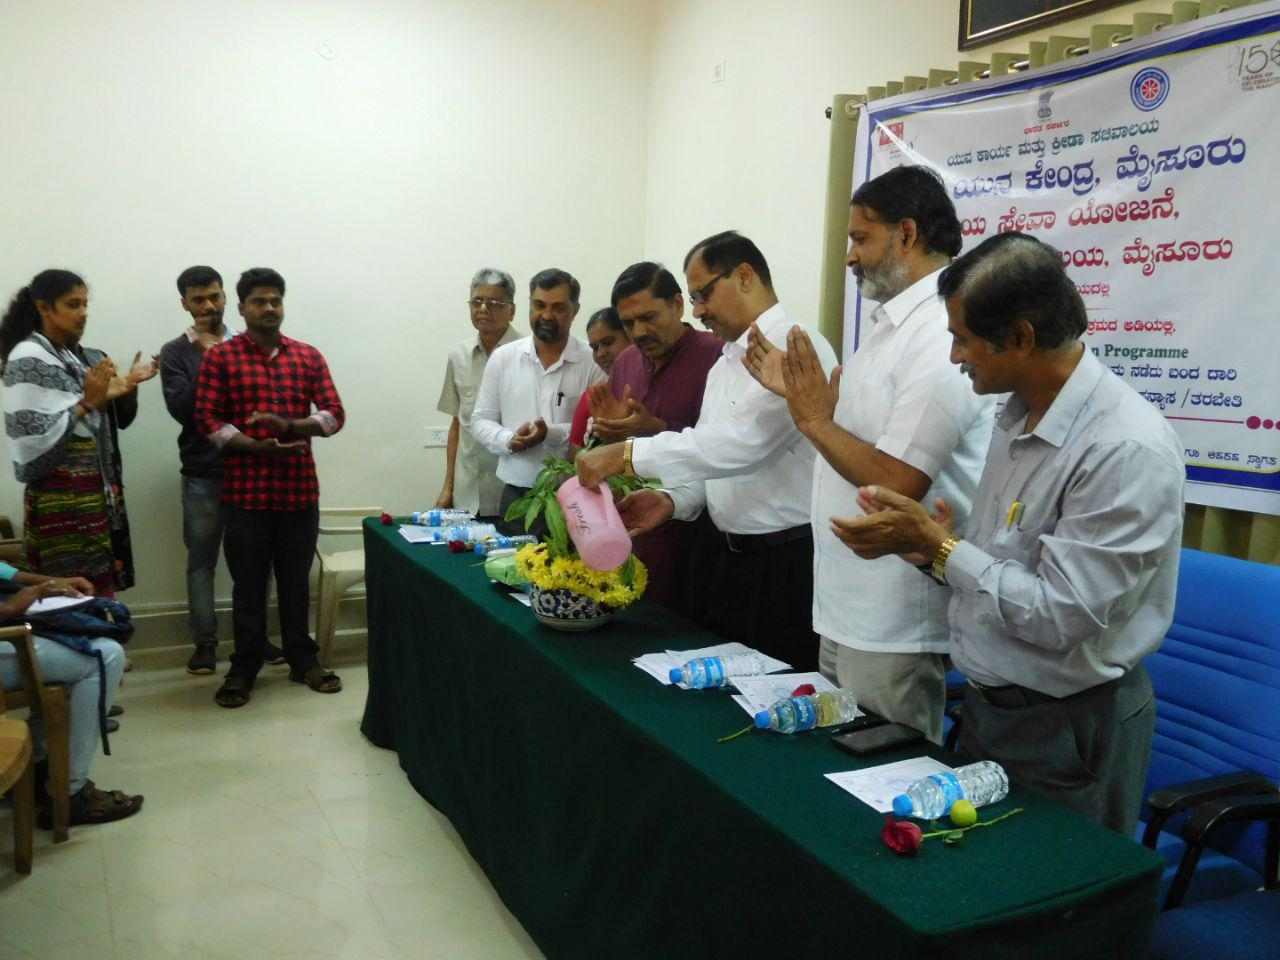 Yogatma Srihari inaugurated the lecture and training programme on the Indian Freedom Movement